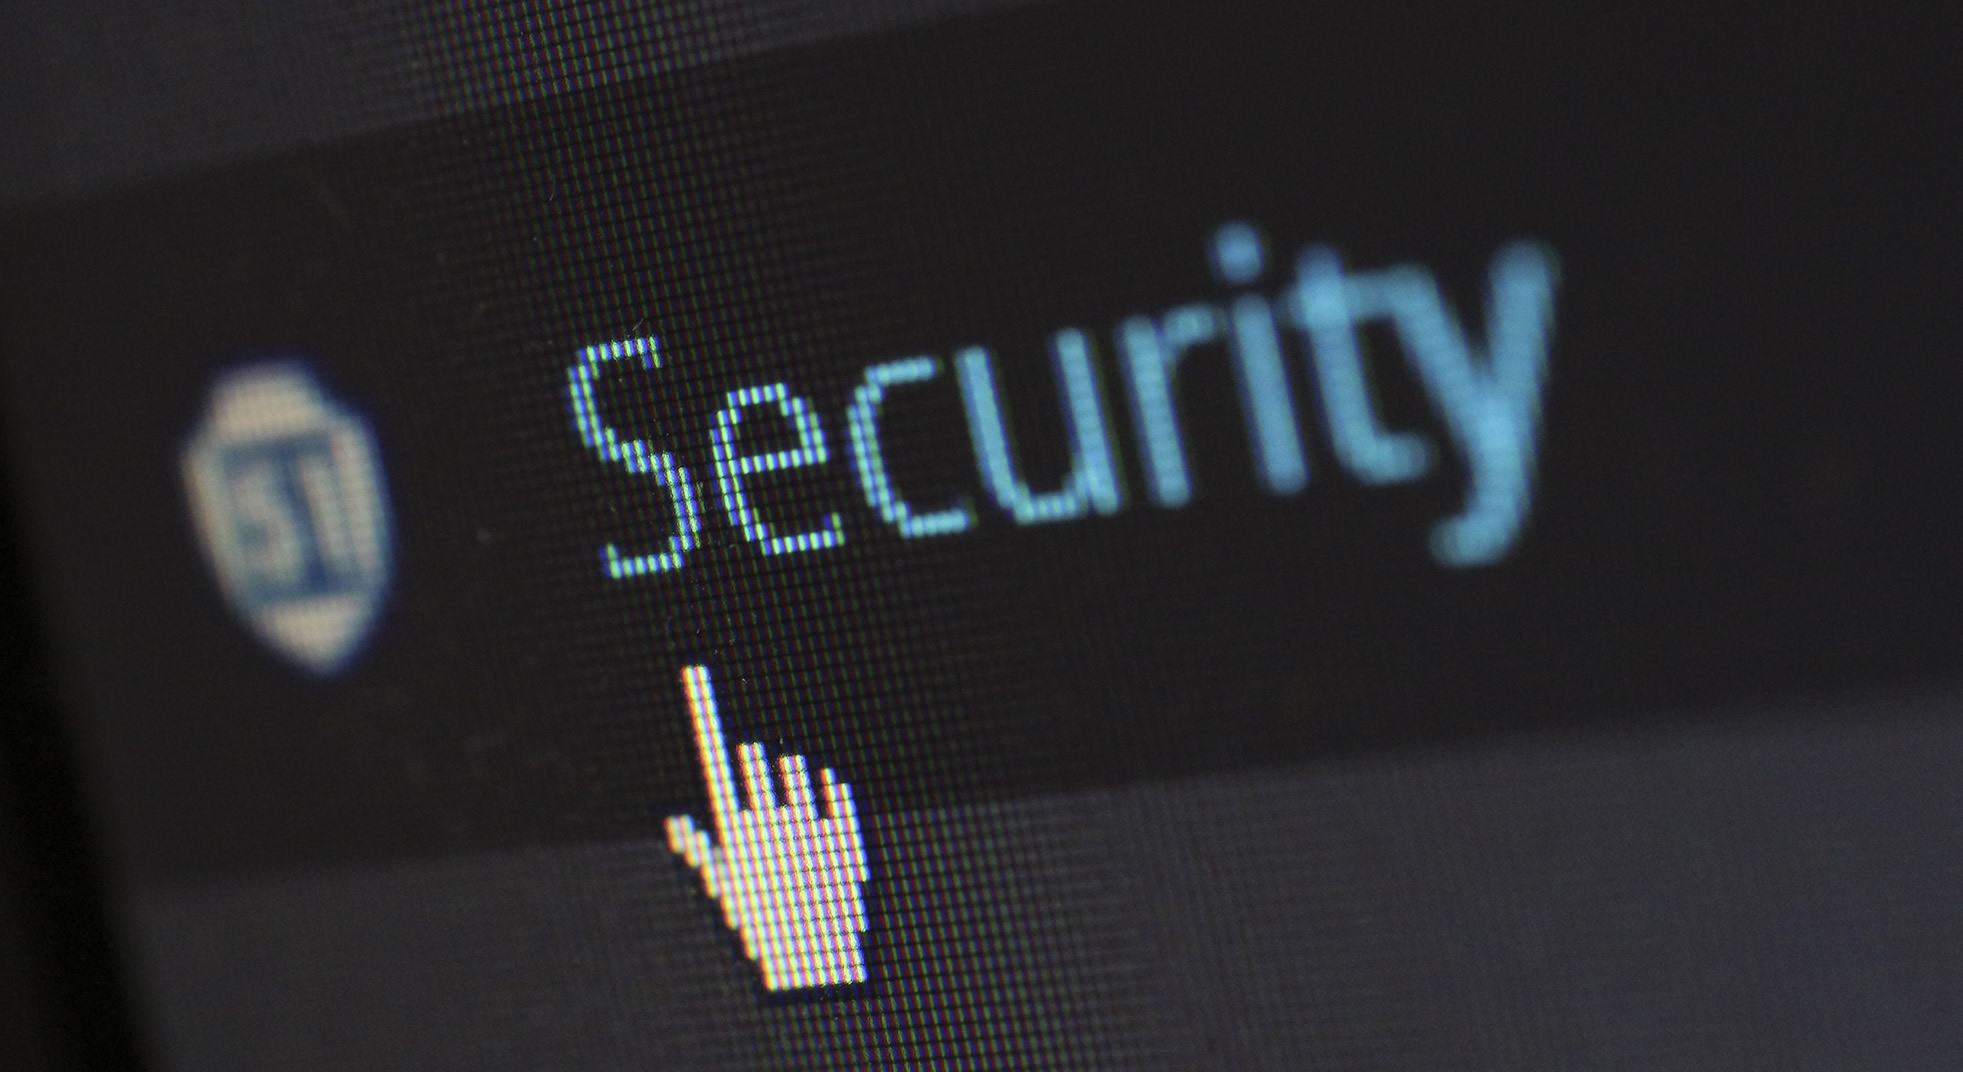 Cyber Security Image Migration legacy article